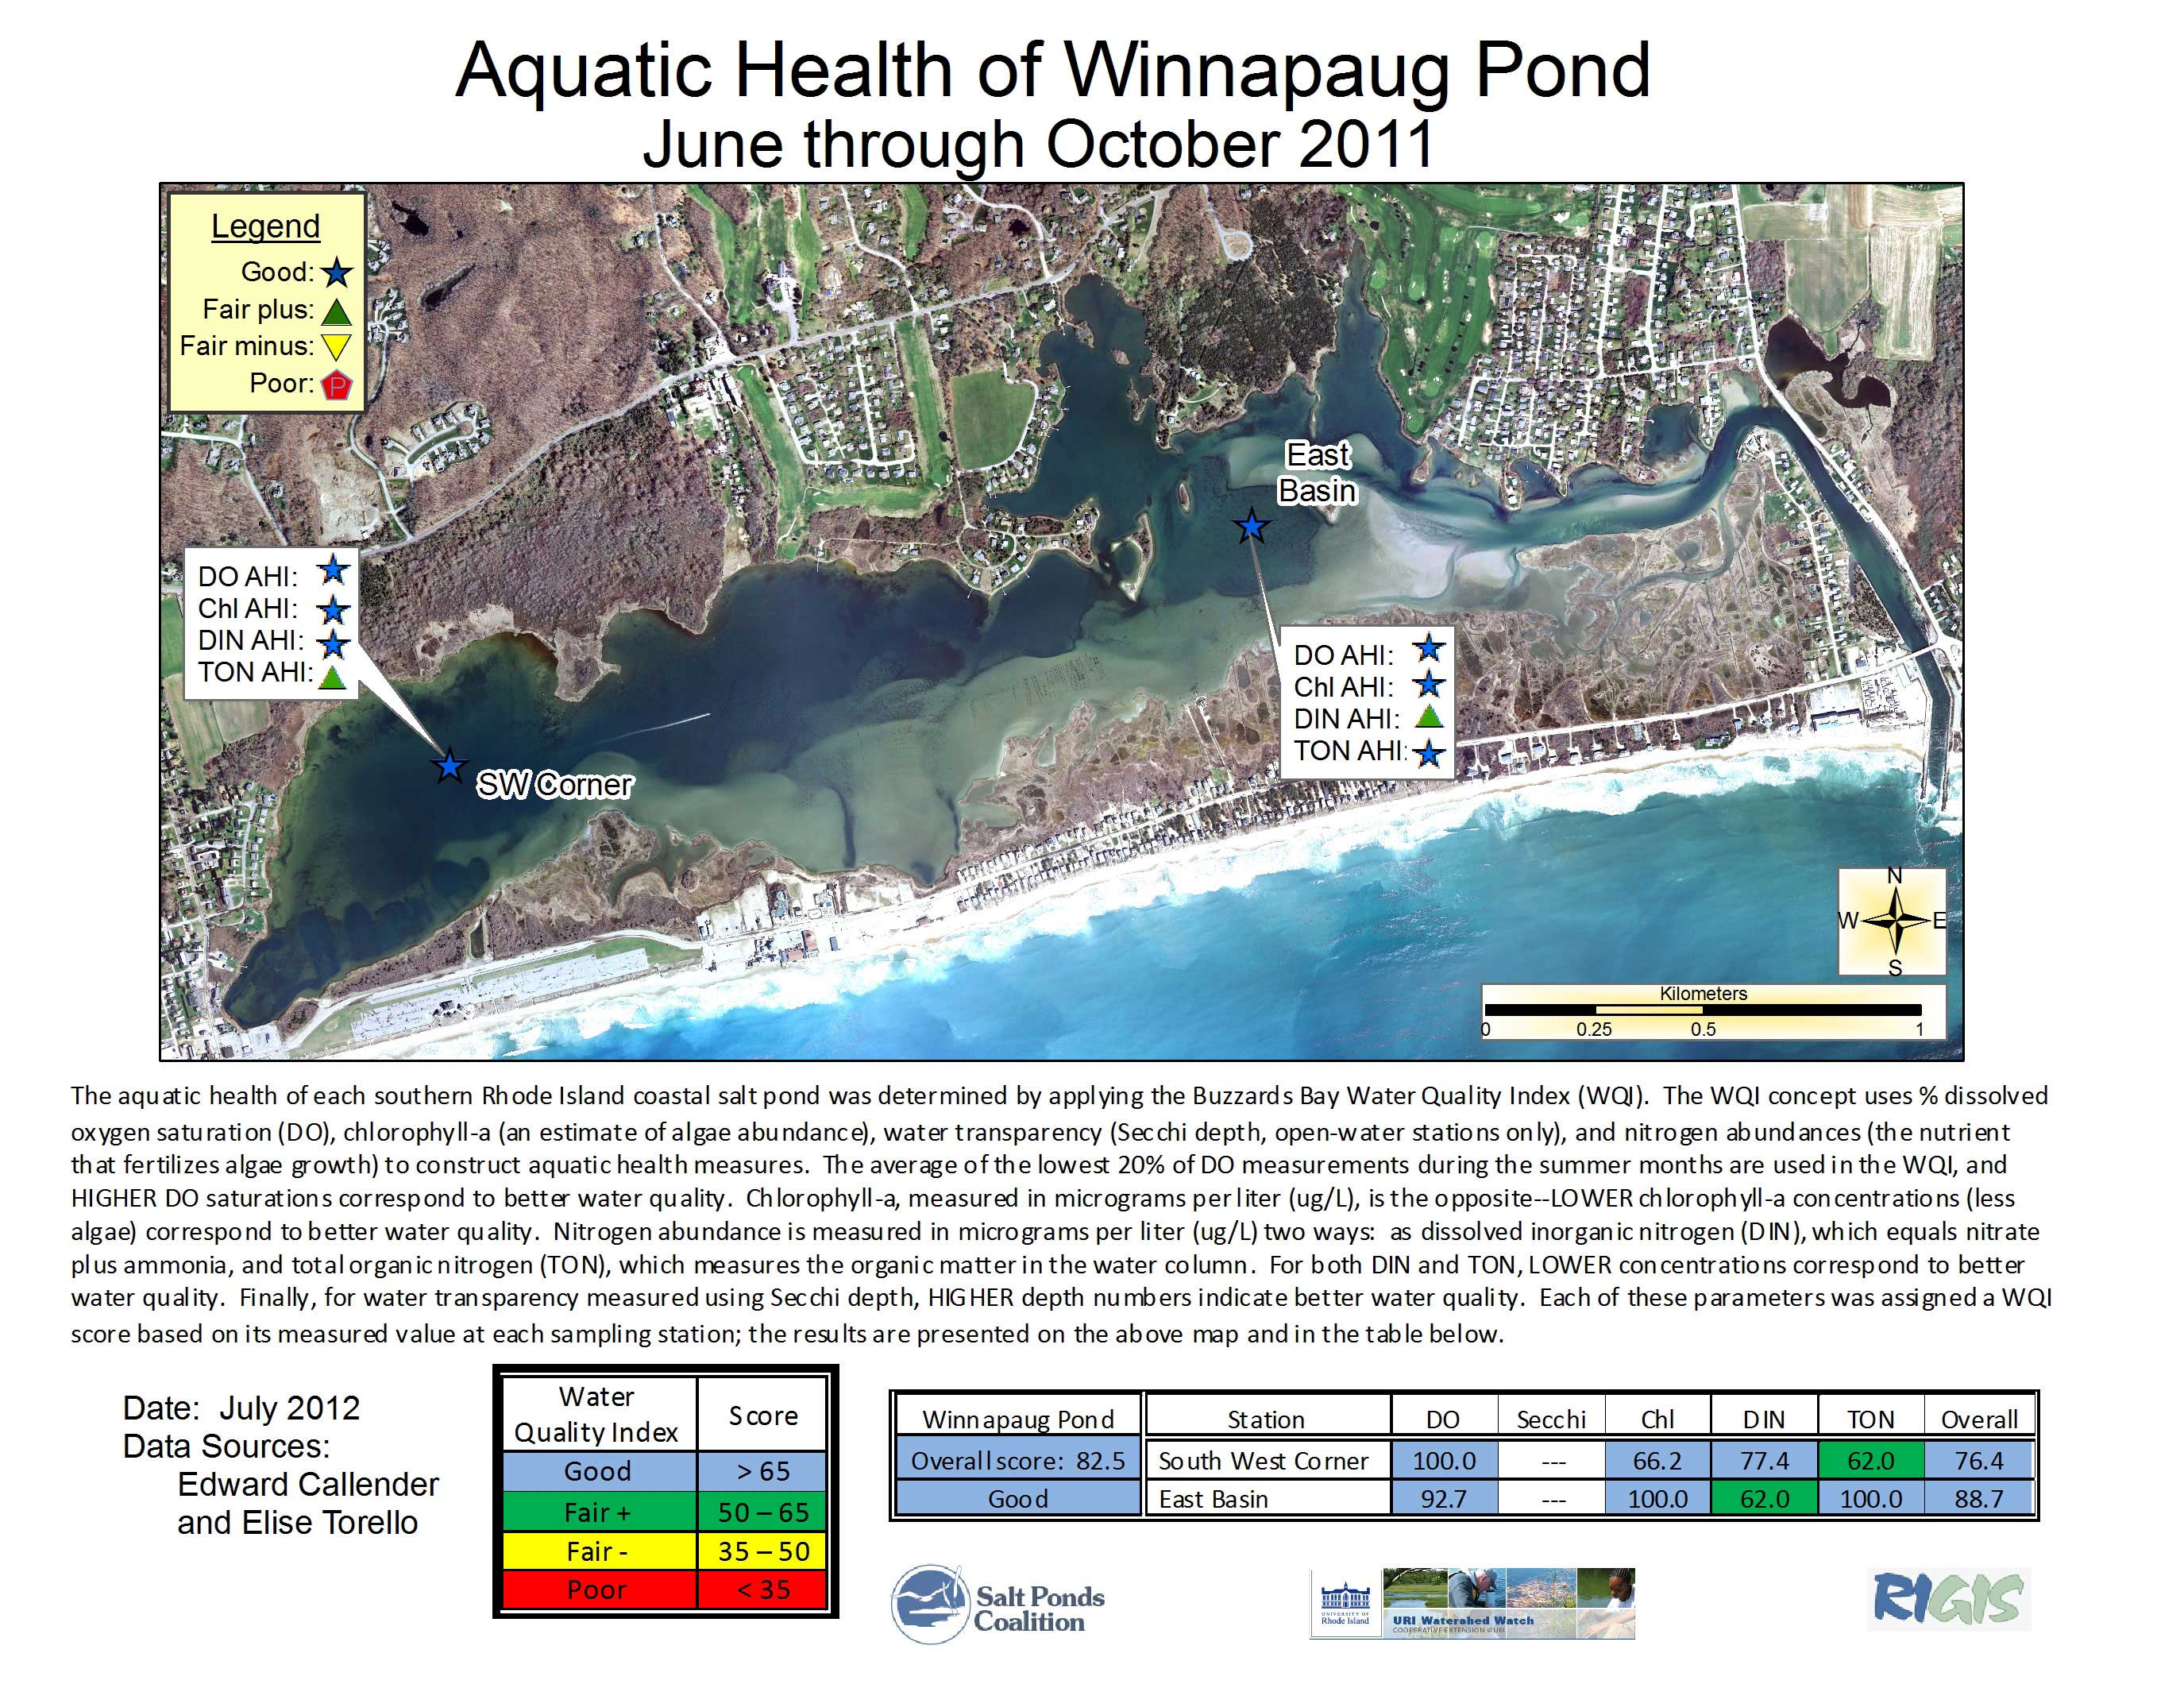 Winnapaug pond 2011 aquatic health index map nvjuhfo Images